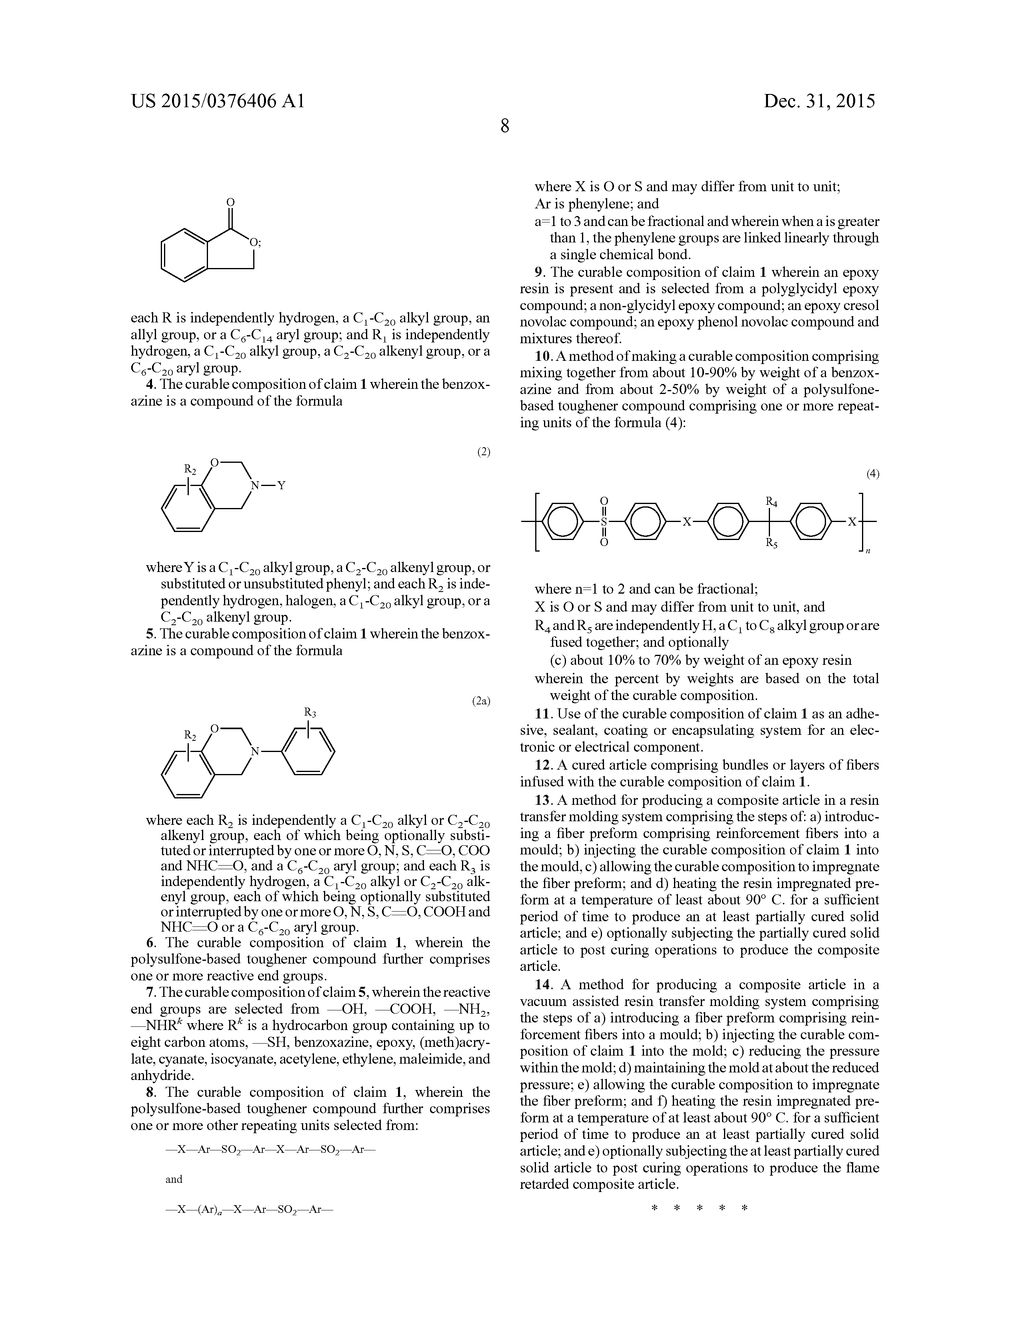 Benzoxazine Curable Composition Containing Polysulfone-Based Tougheners - diagram, schematic, and image 09